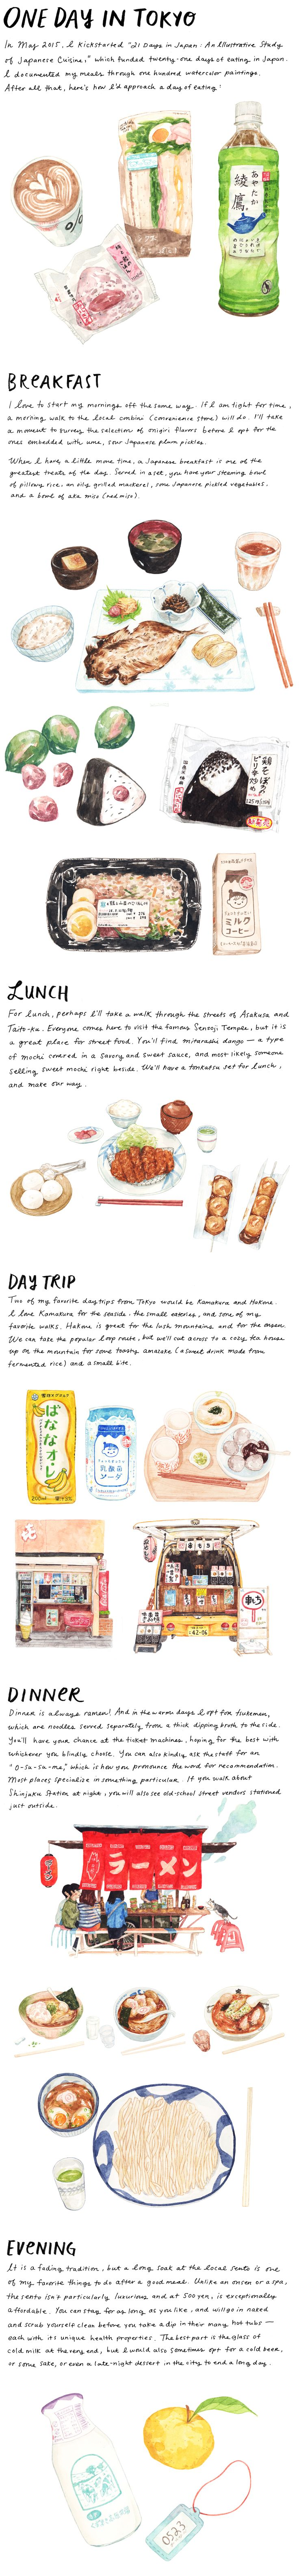 How to Spend One Day in Tokyo - Really pretty watercolors of common stuff found in Tokyo.